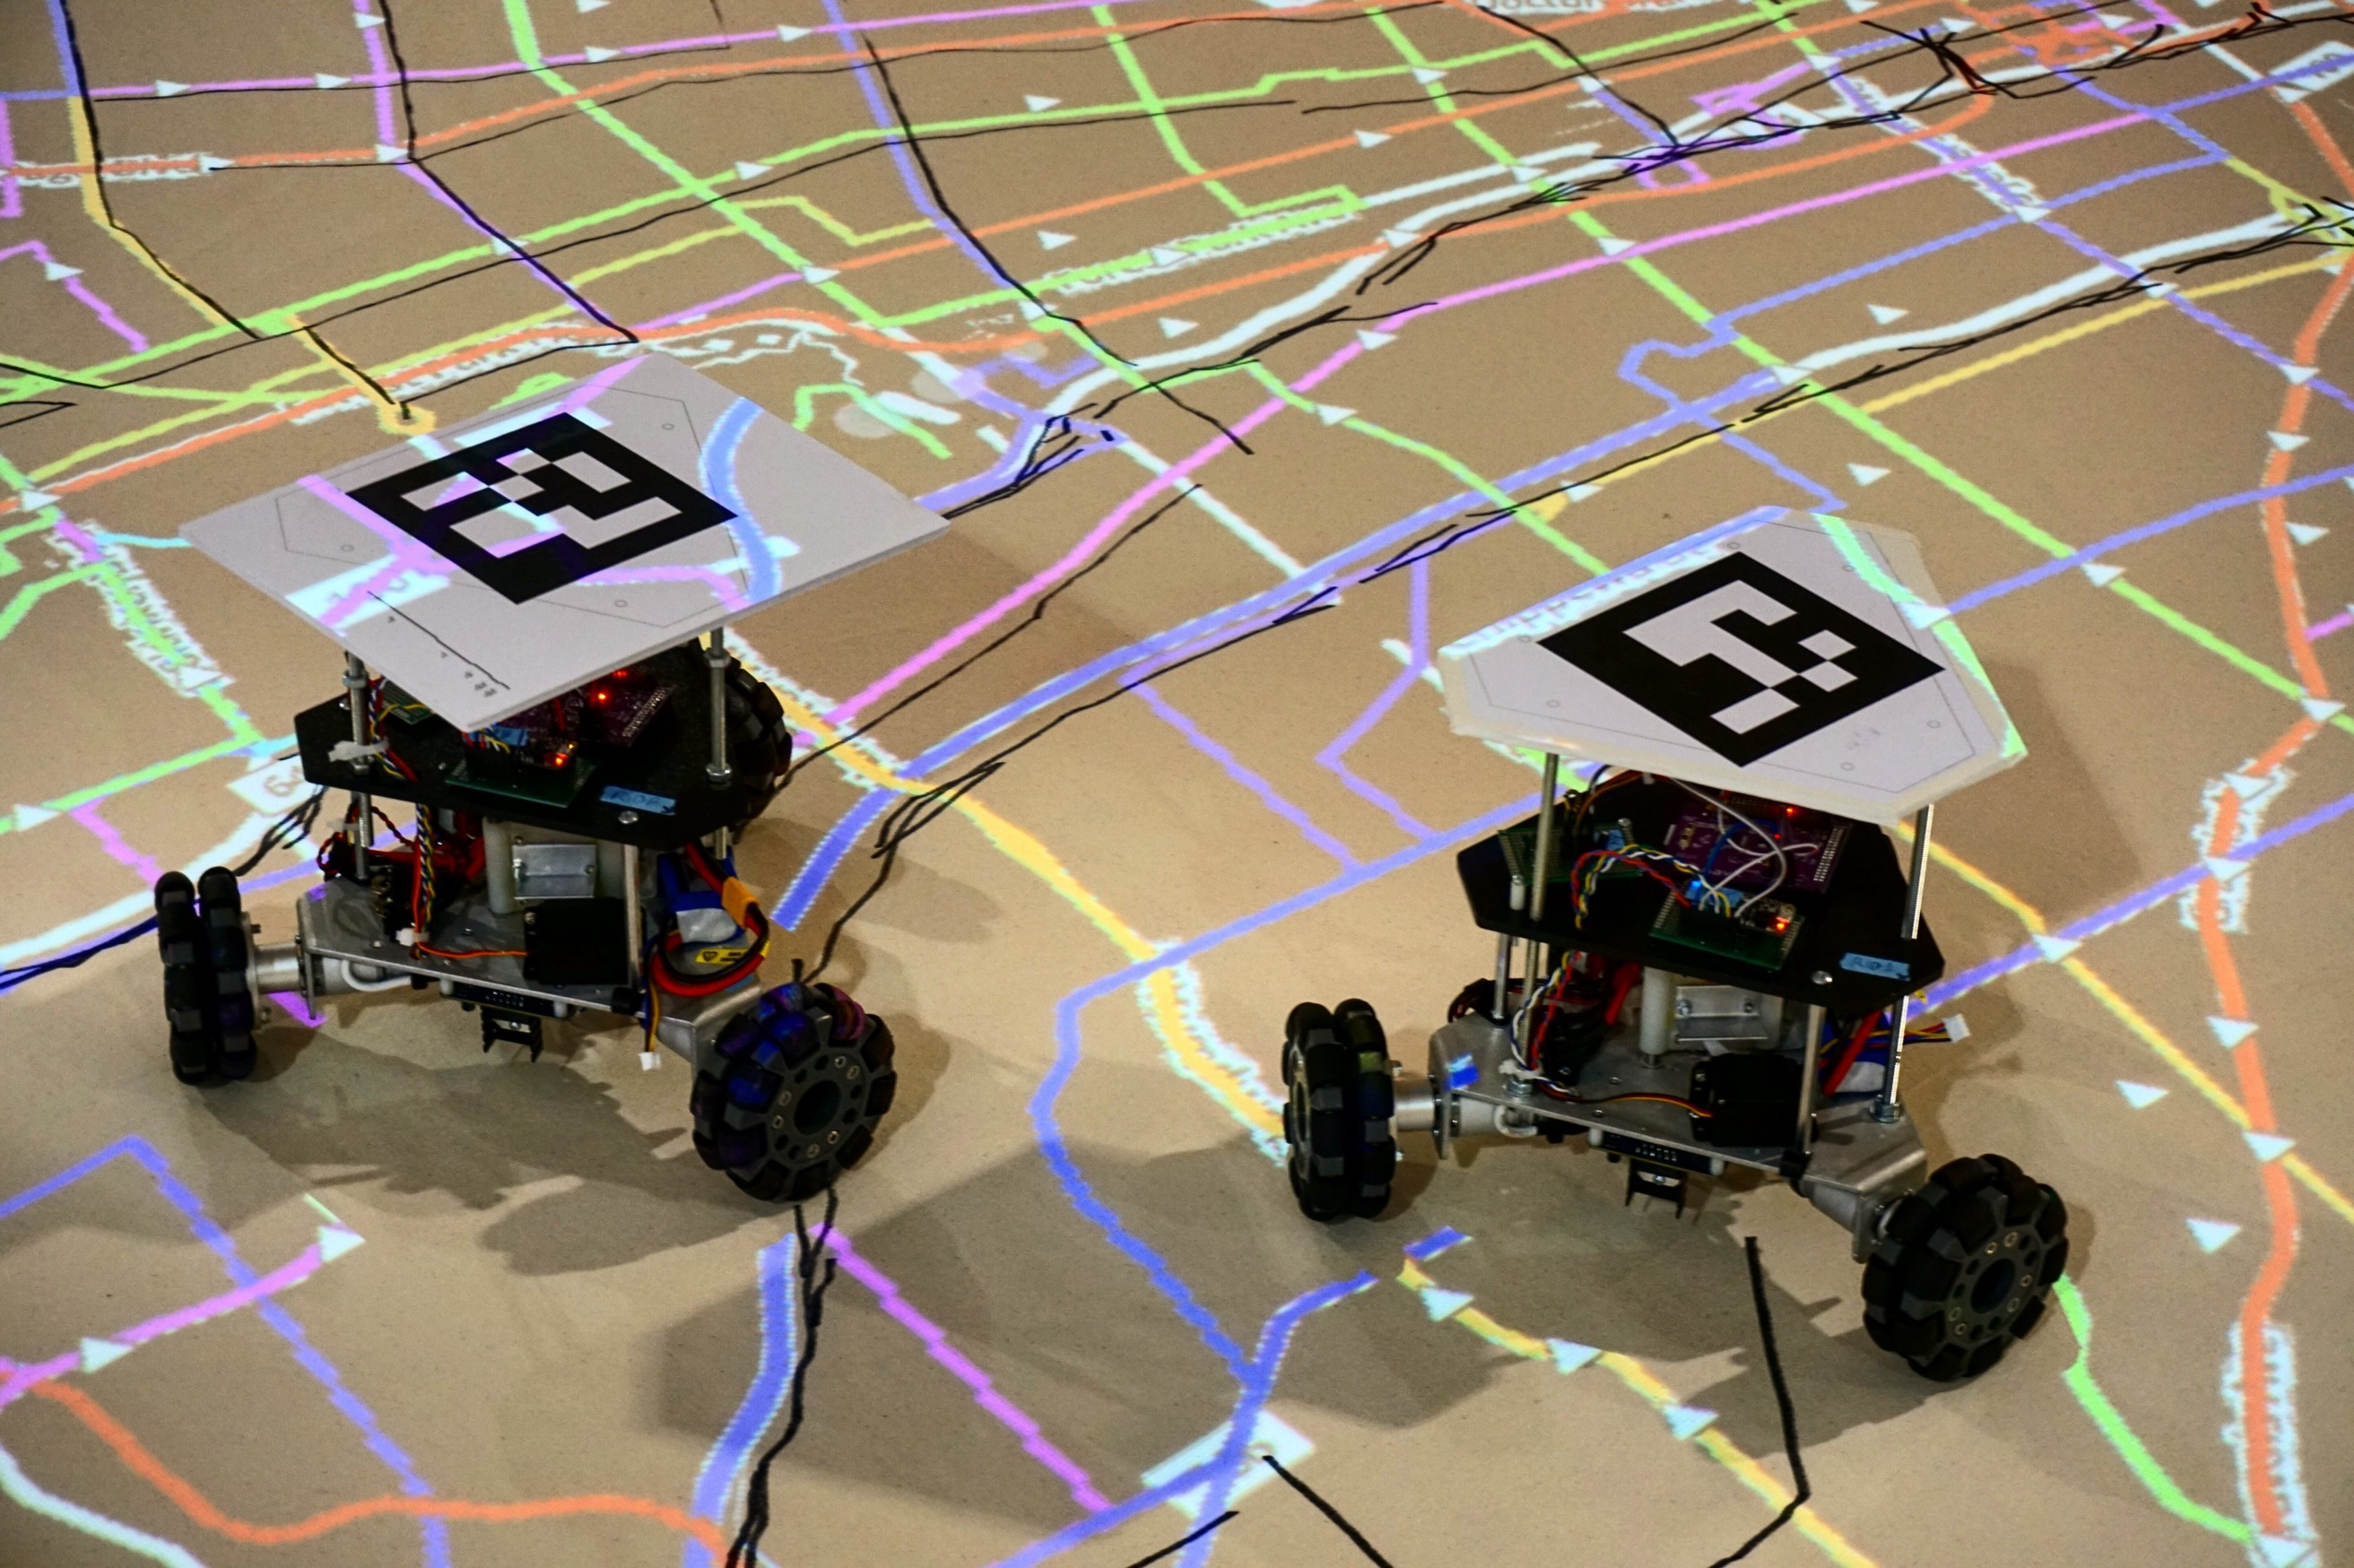 Drawing maps with robots, OpenCV, and Raspberry Pi - Chris Anderson